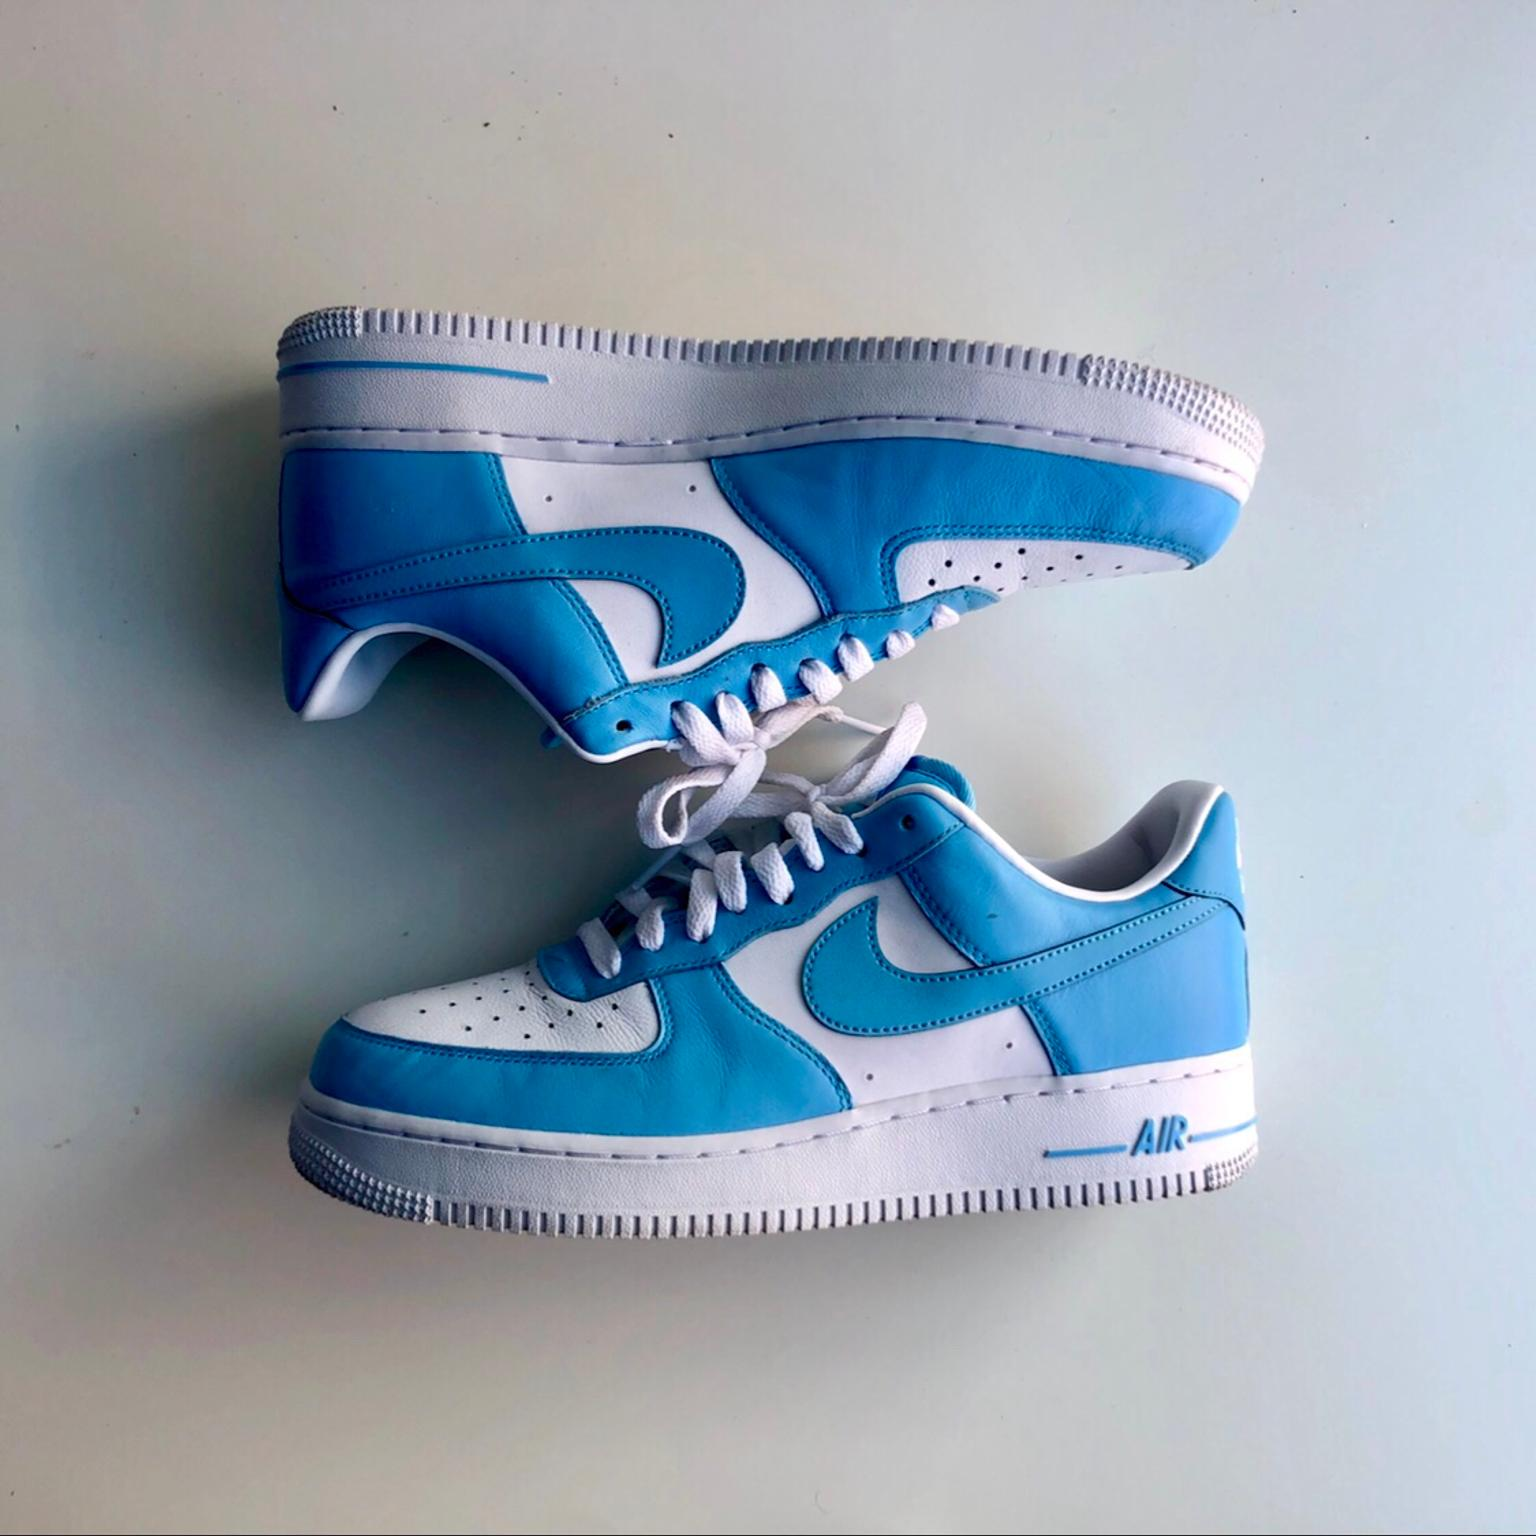 "NIKE AIR FORCE 1 LOW ""BLUE GALE"" in 2516HJ The Hague für 80"